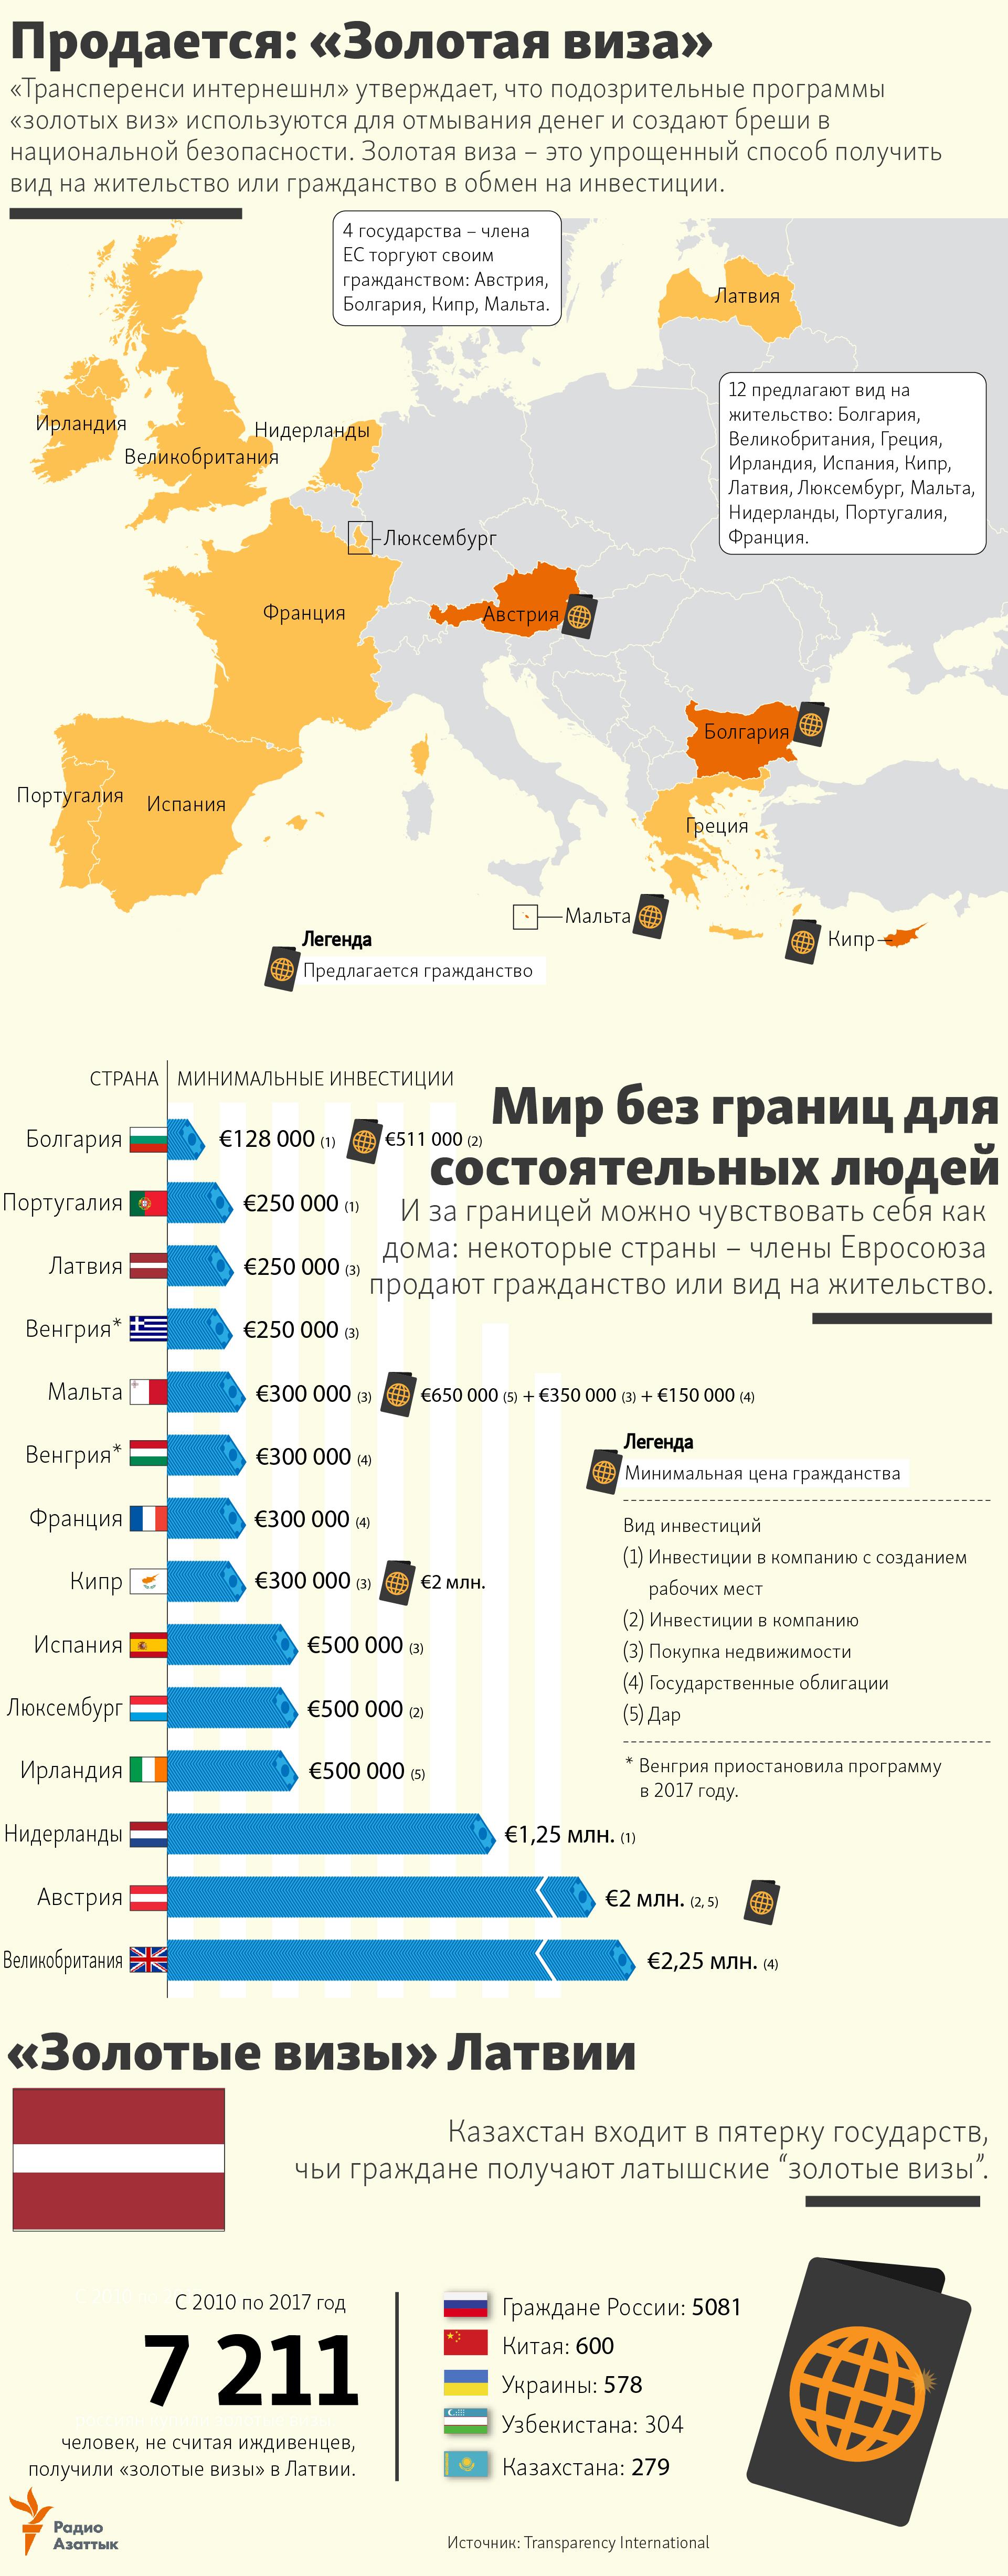 infographic about alcohol consumption on post soviet countries